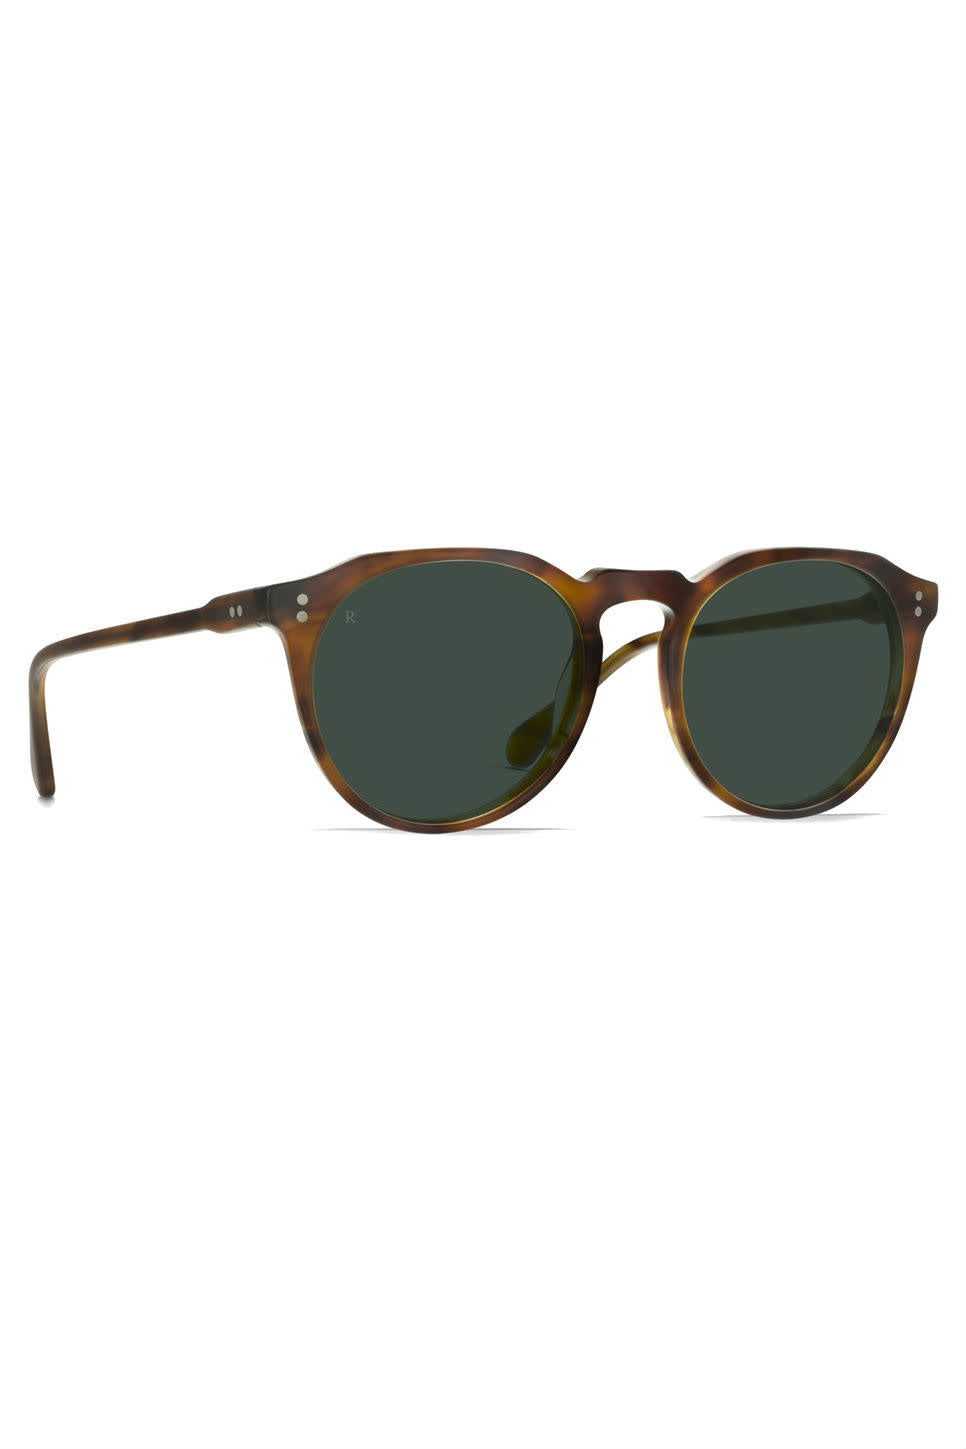 RAEN - Remmy 52 - Split Finish Rootbeer/Green - Profile